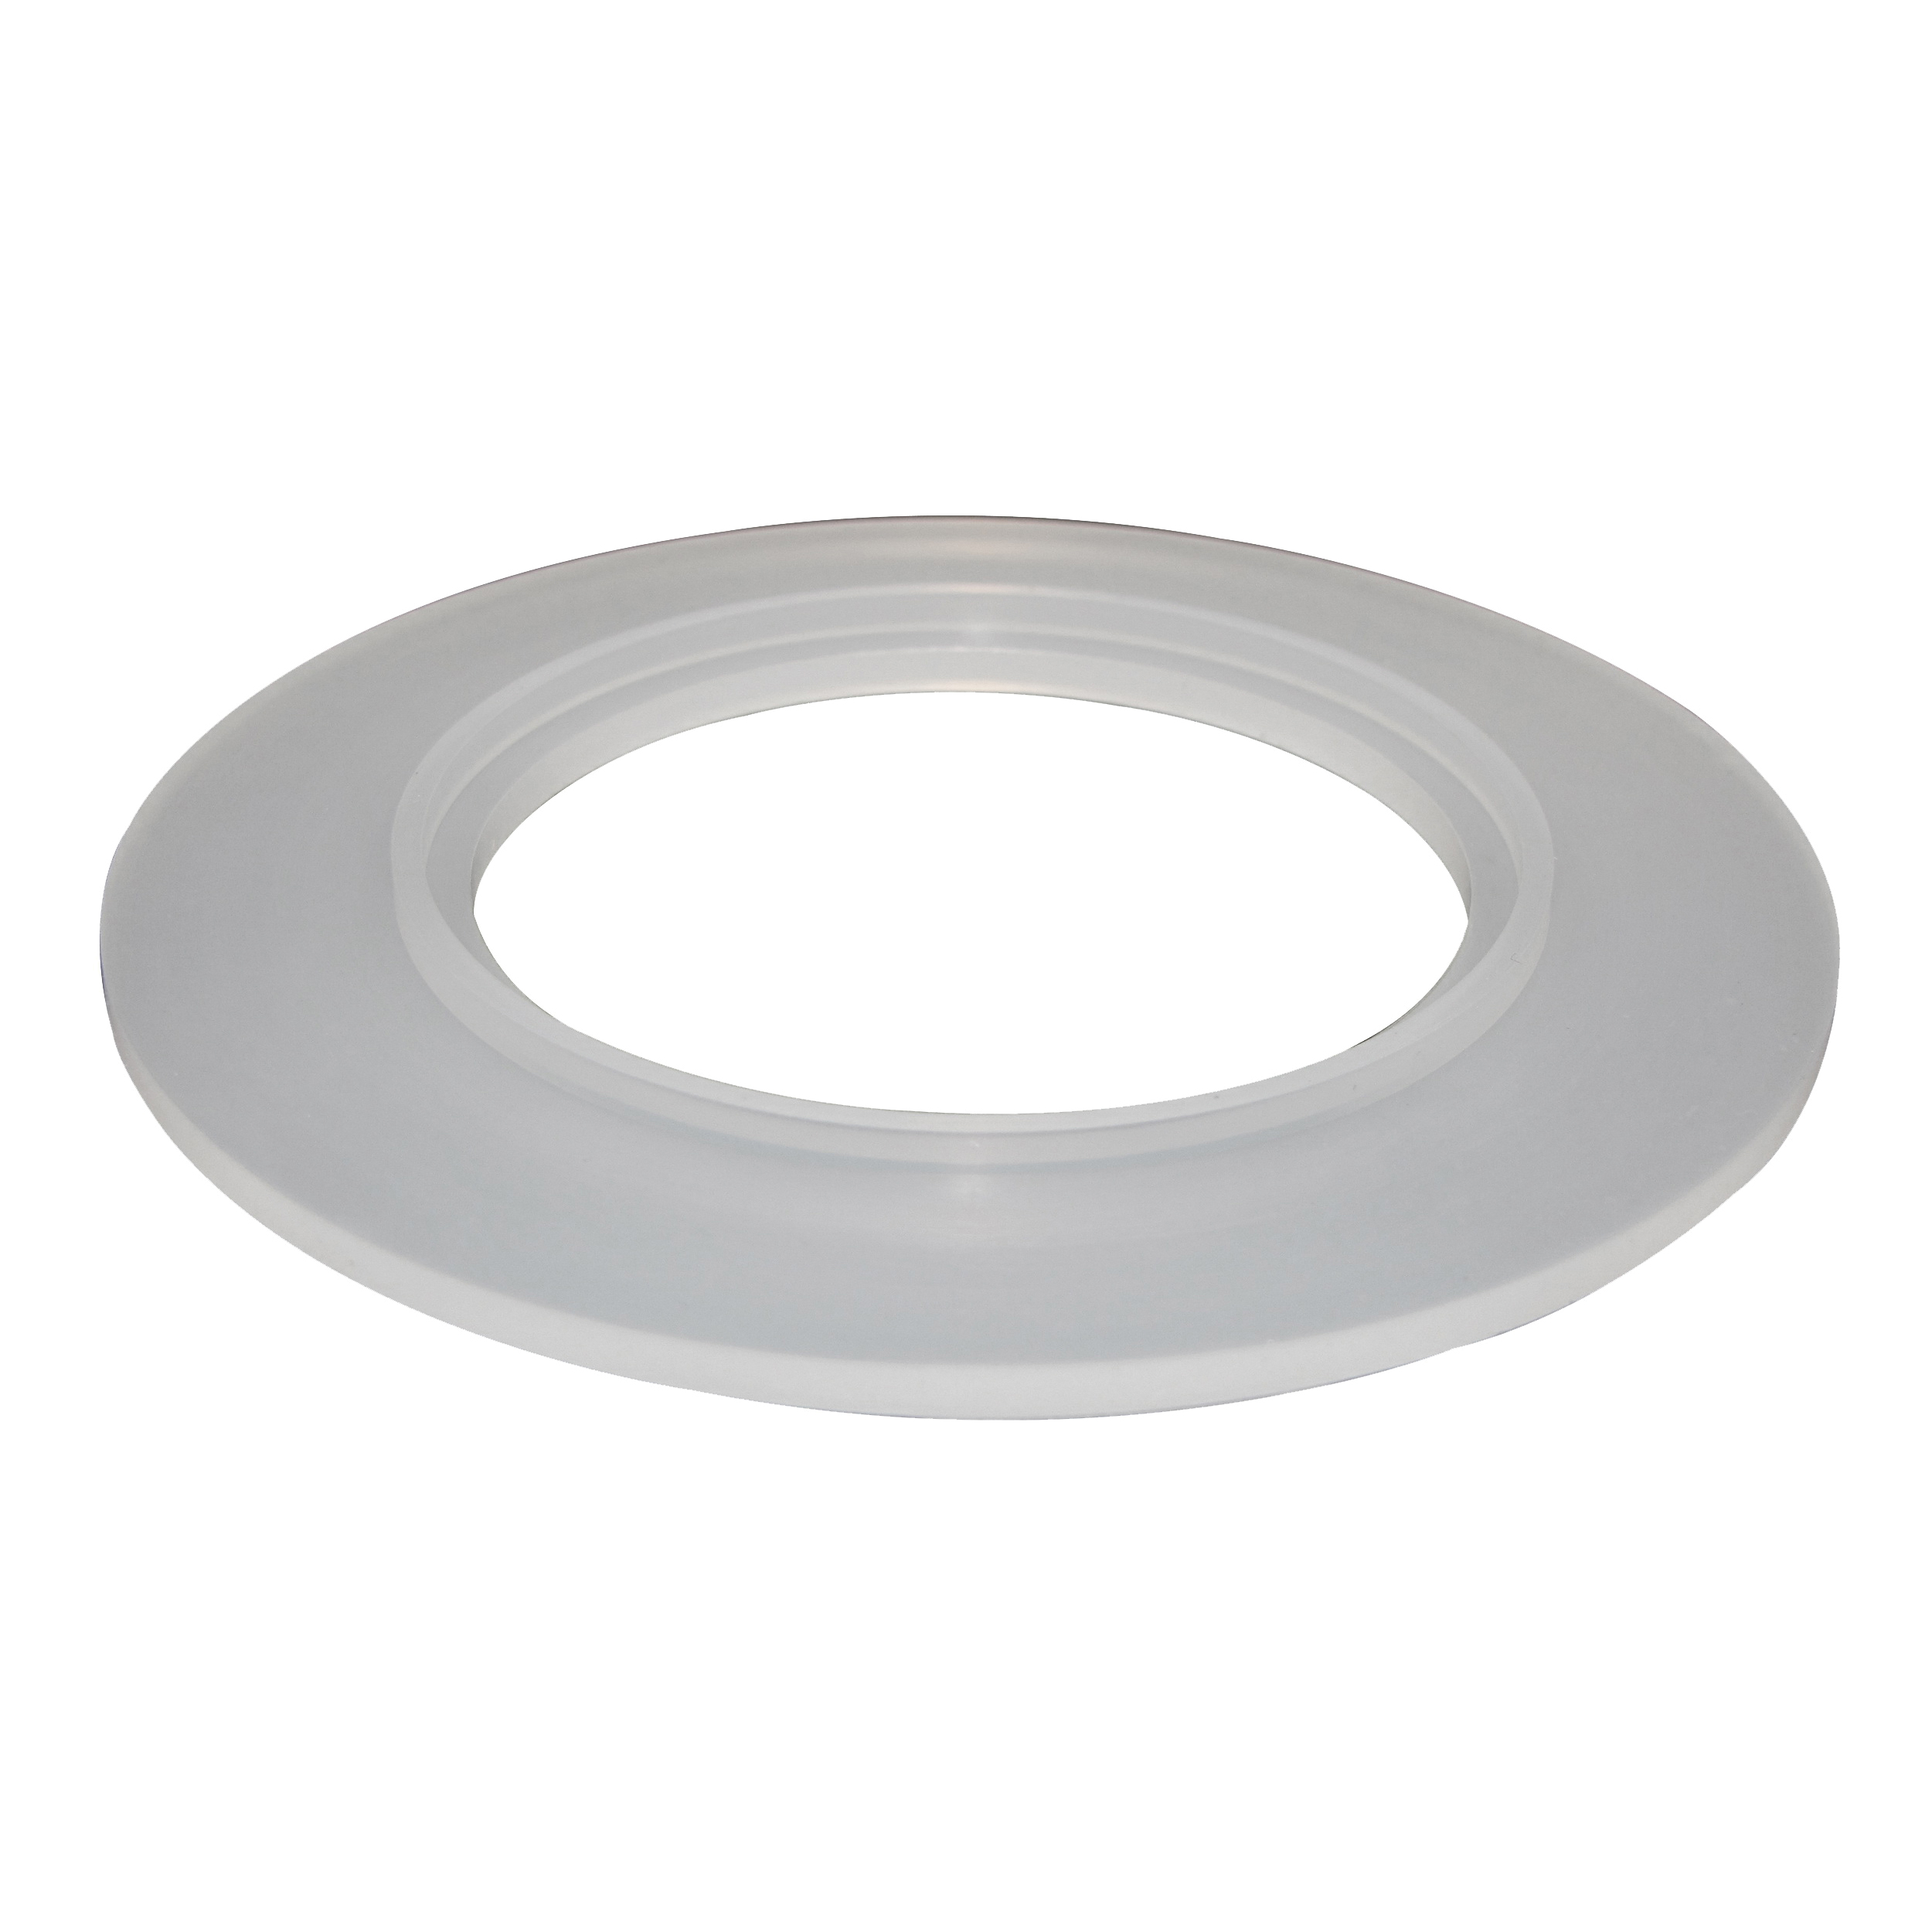 Picture of Keeney K831-3 Seal, 3 in Dia, Silicone, For: Keeney 3 in Green Flapper K833-1